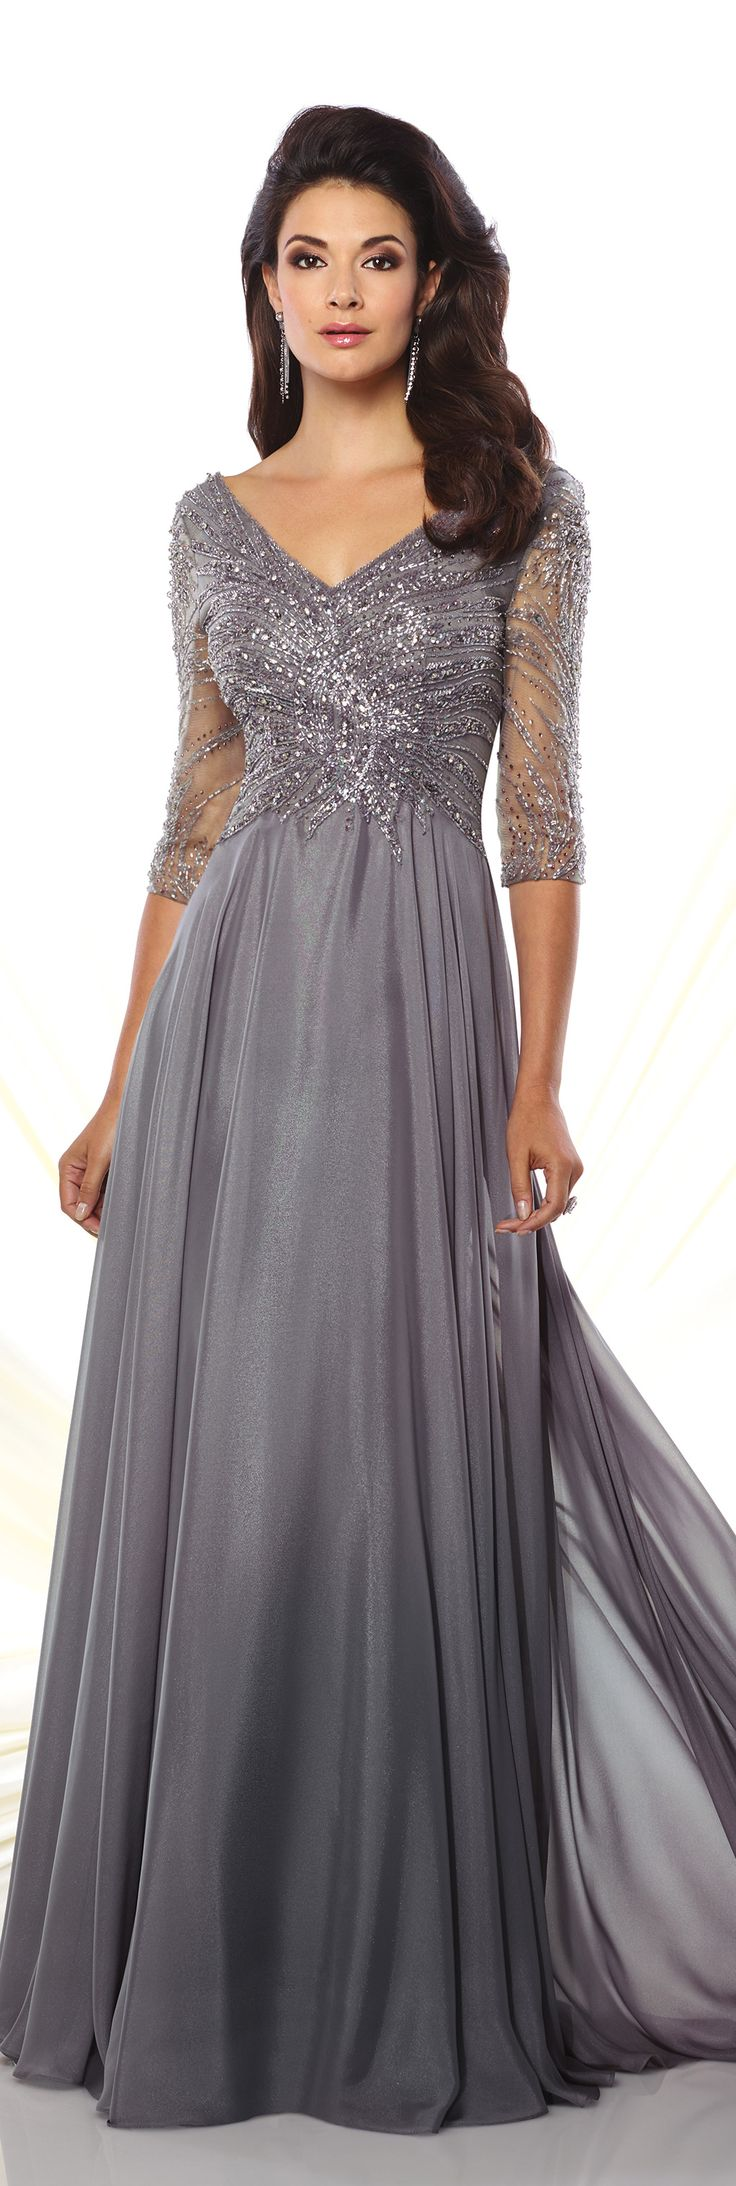 Best 20+ Evening gowns near me ideas on Pinterest | Purple ball ...